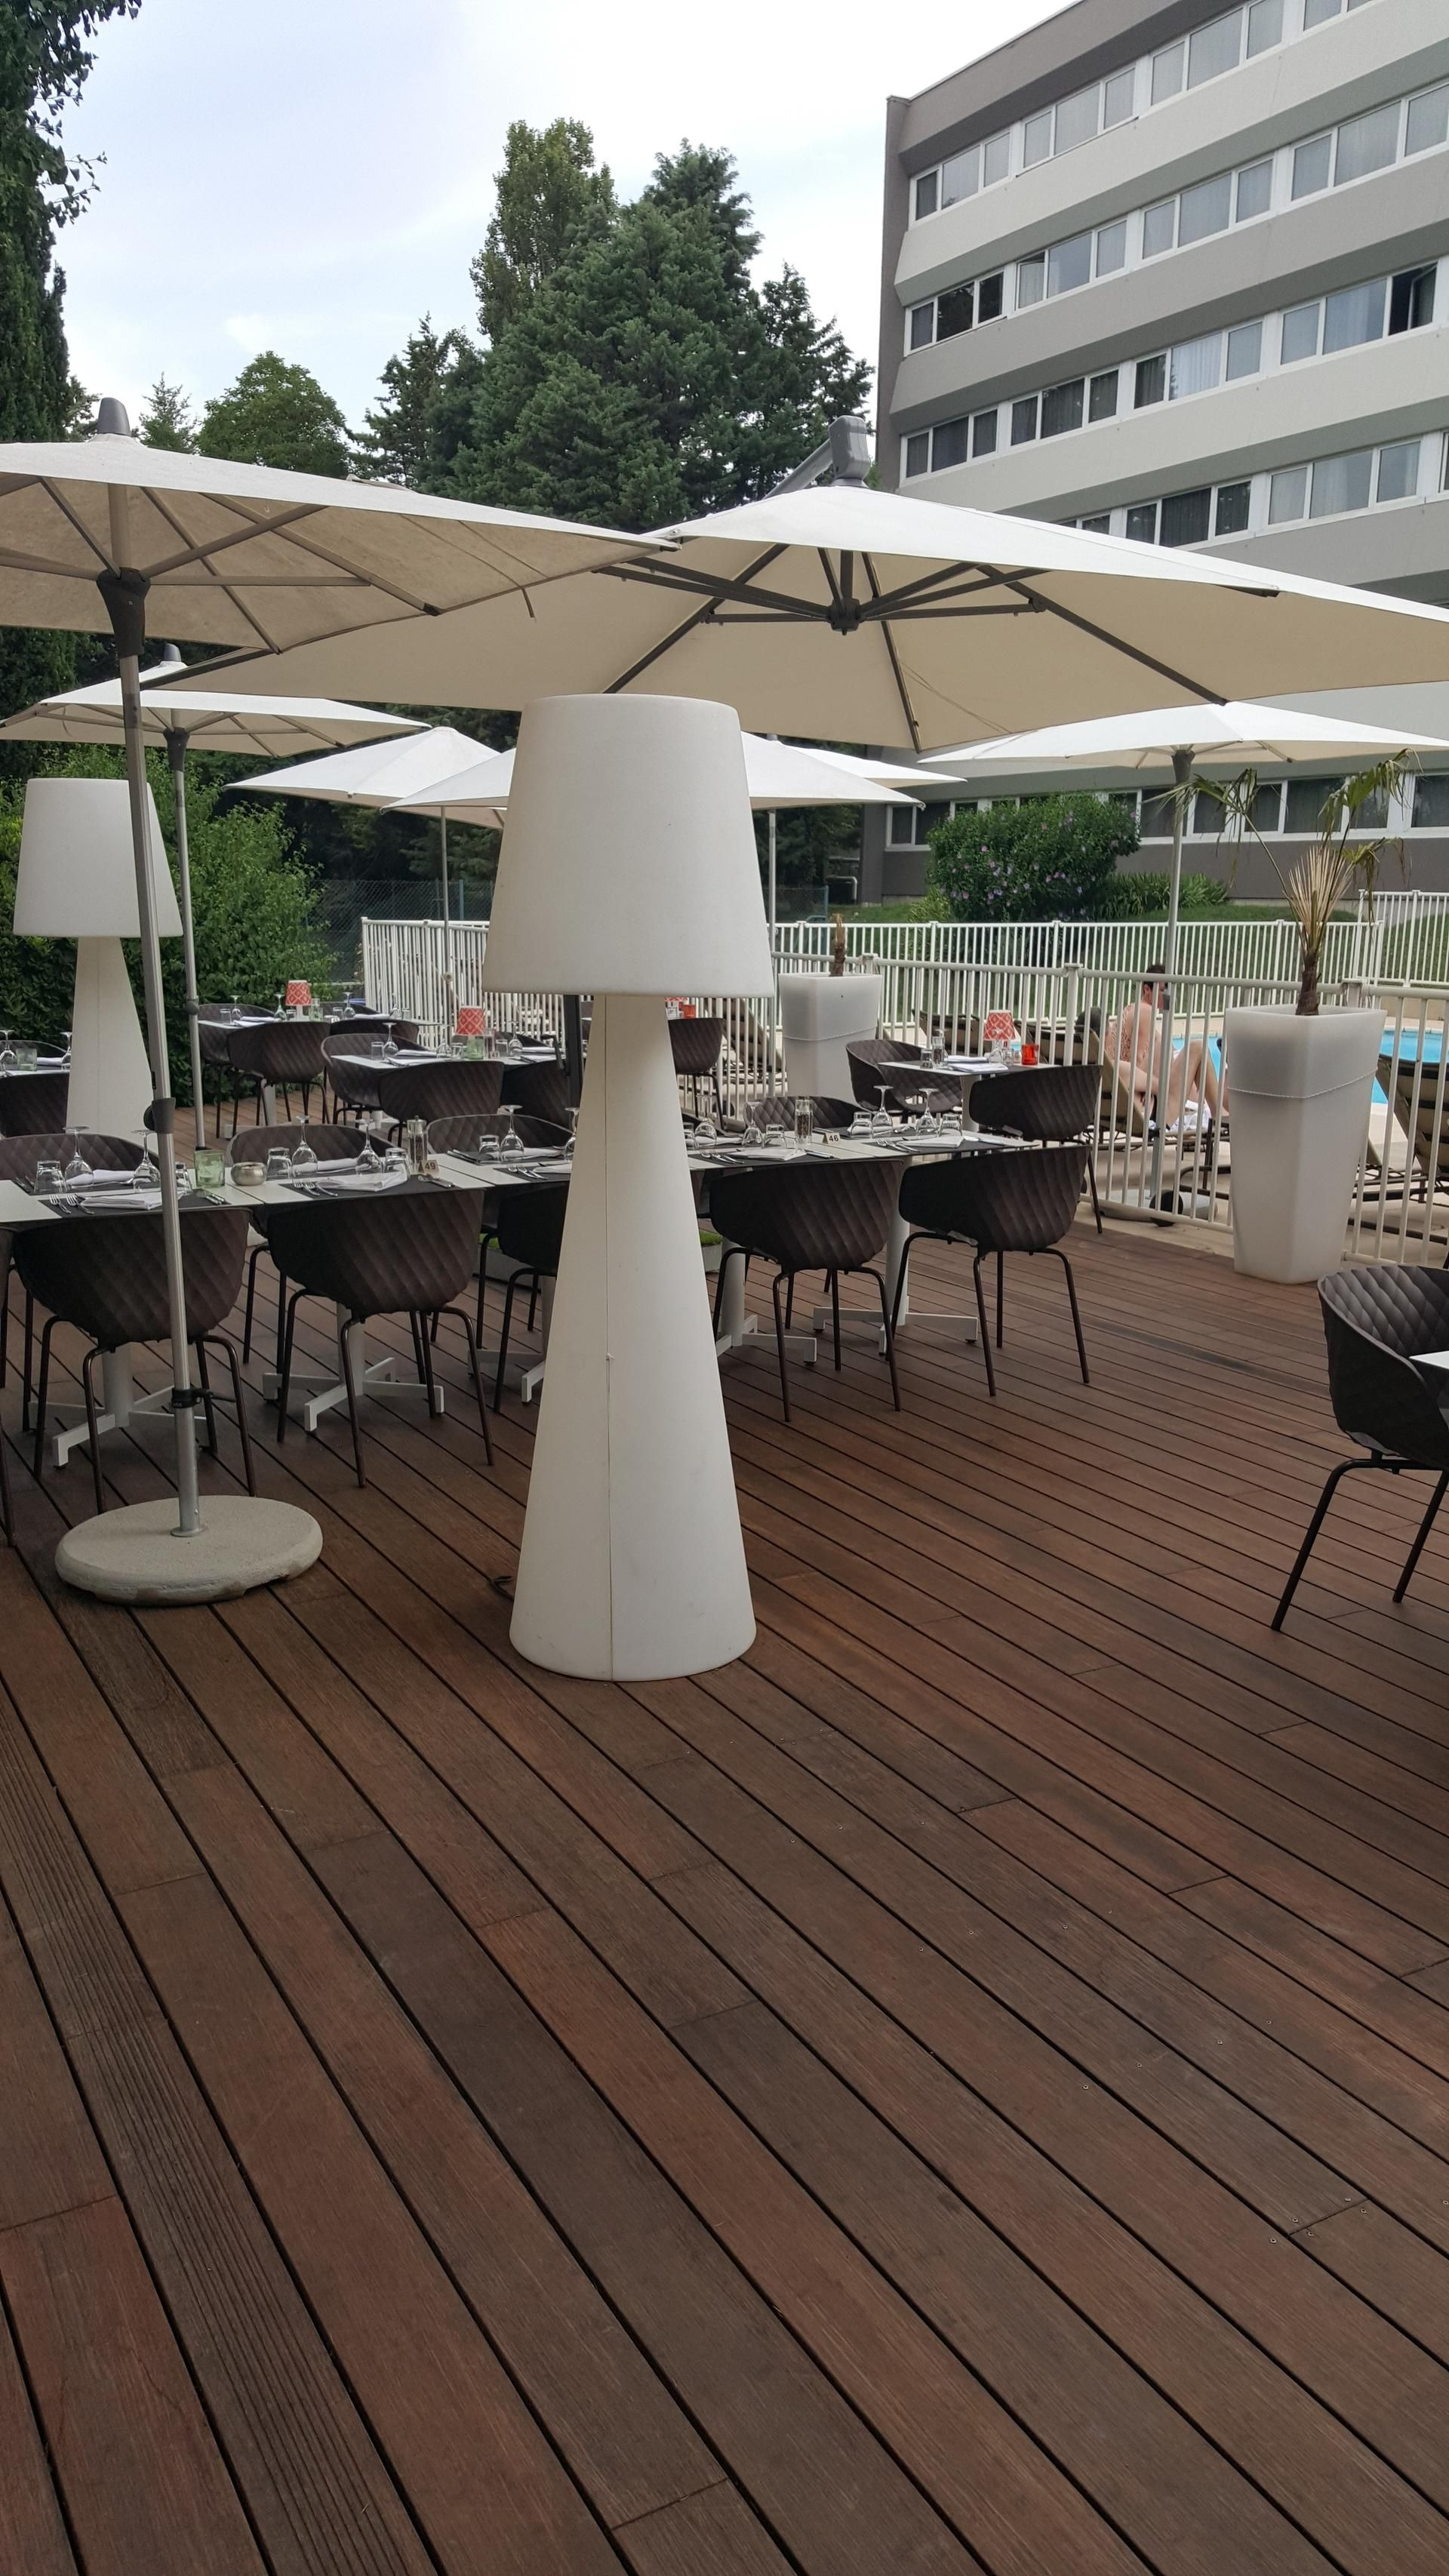 MOSO Middle East is the leading supplier of Bamboo Decking